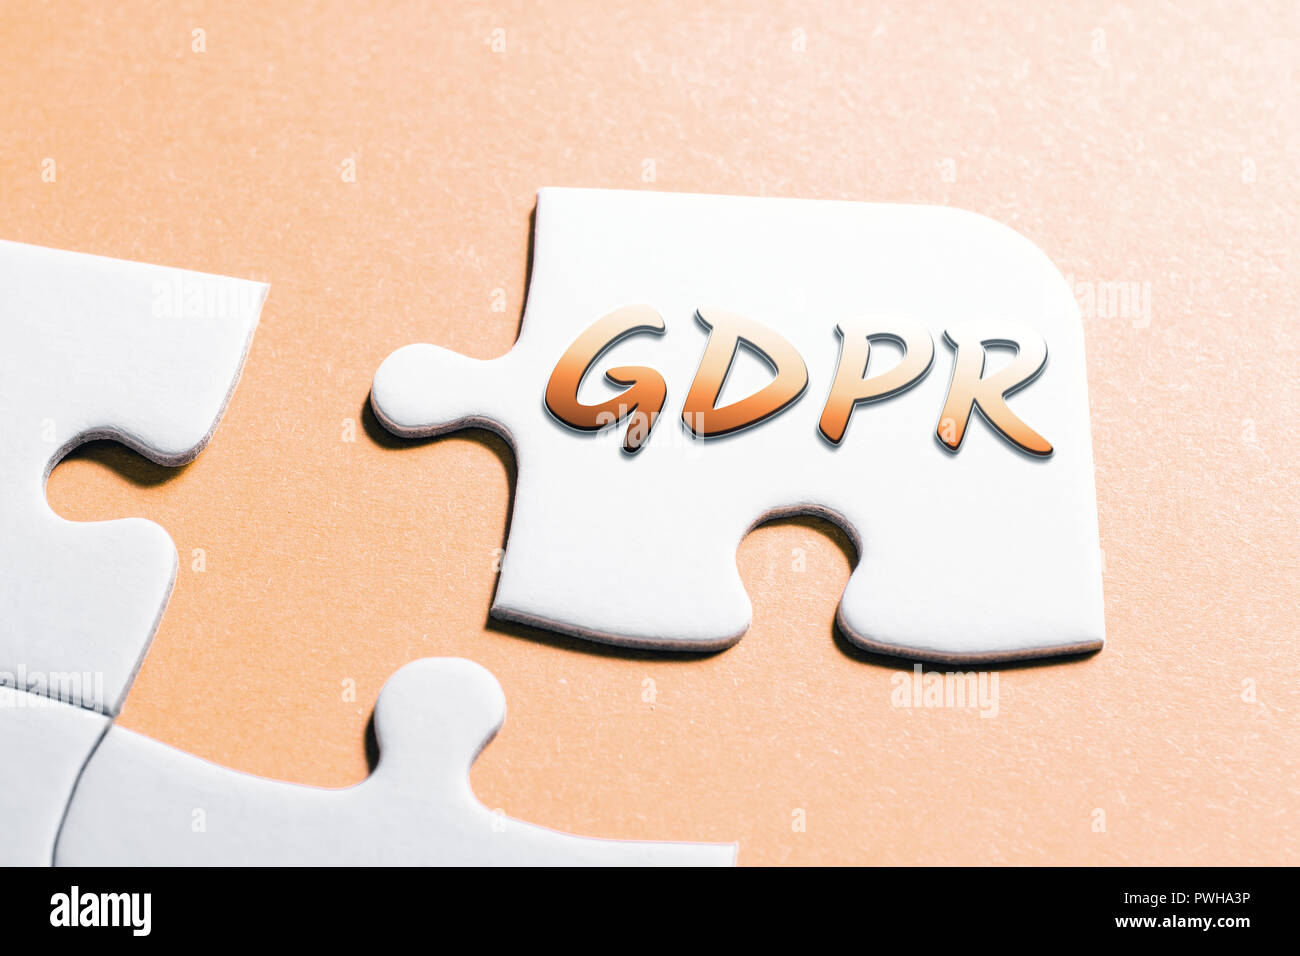 The Word GDPR In Missing Piece Jigsaw Puzzle - Stock Image